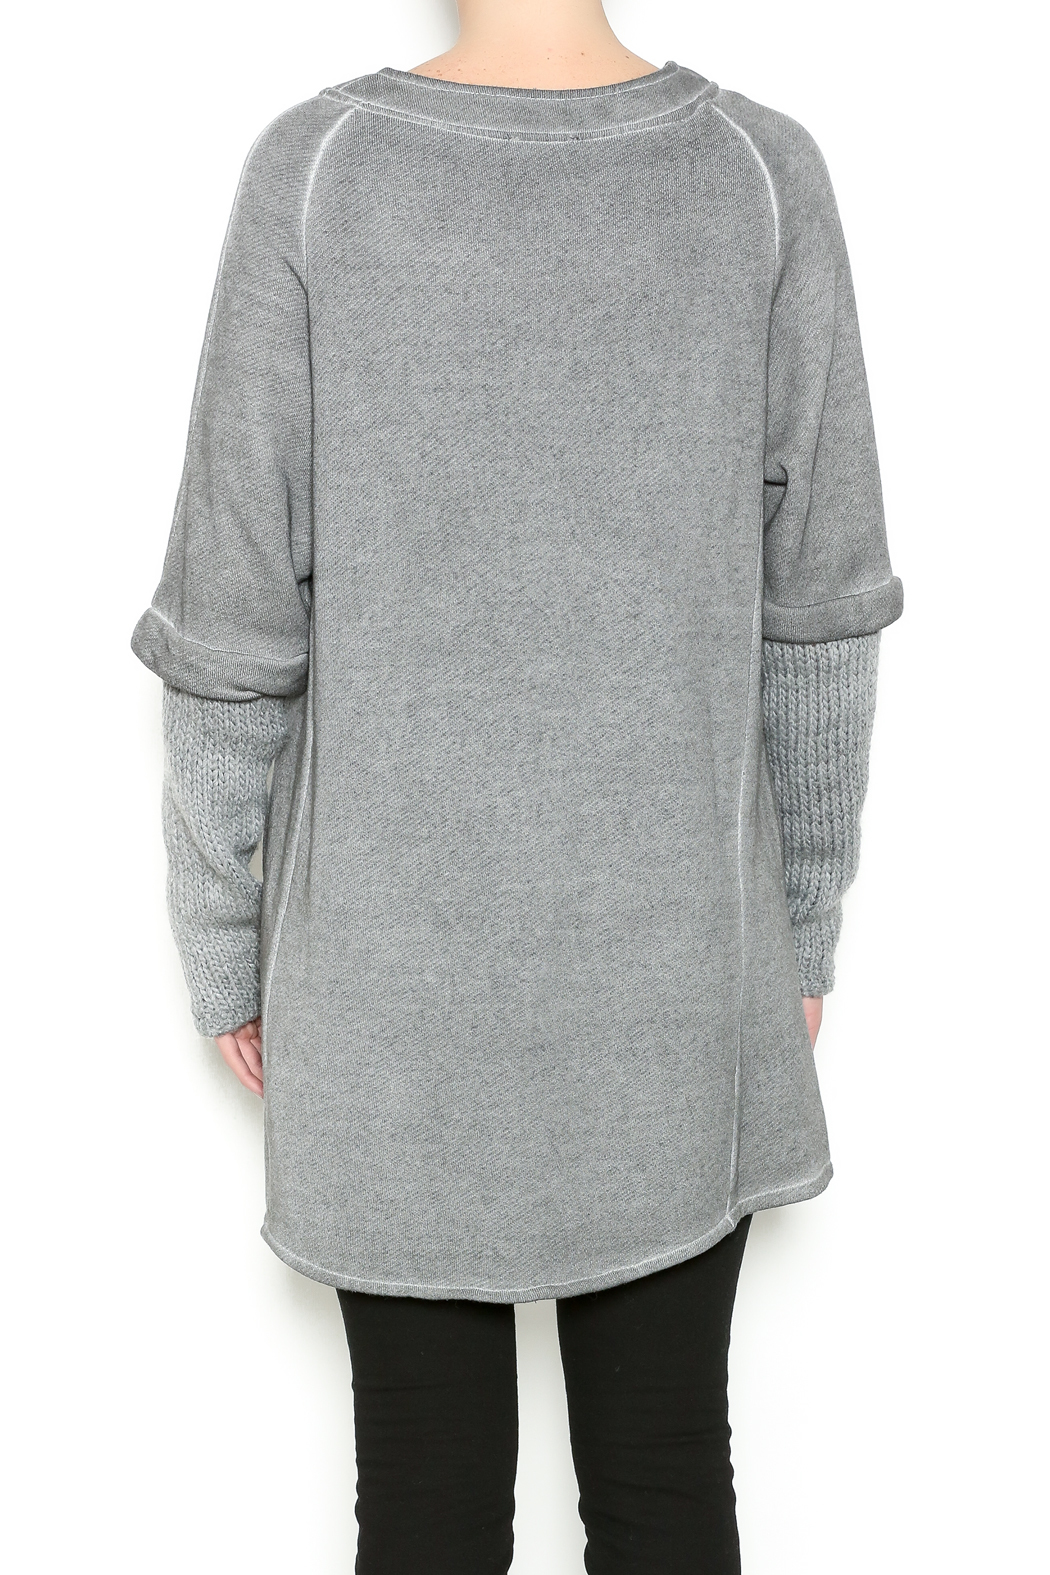 M made in Italy Casual Sweat Jacket from Manhattan by ...